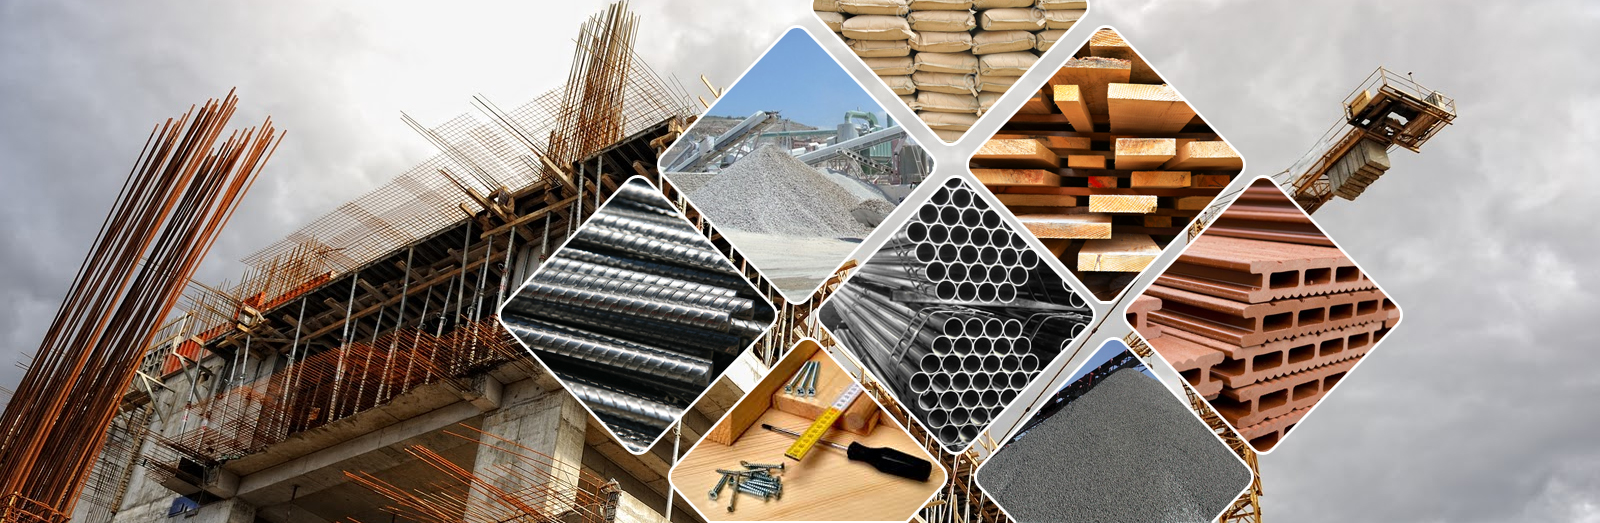 Building materials korbin dallas associates co List of materials to build a house